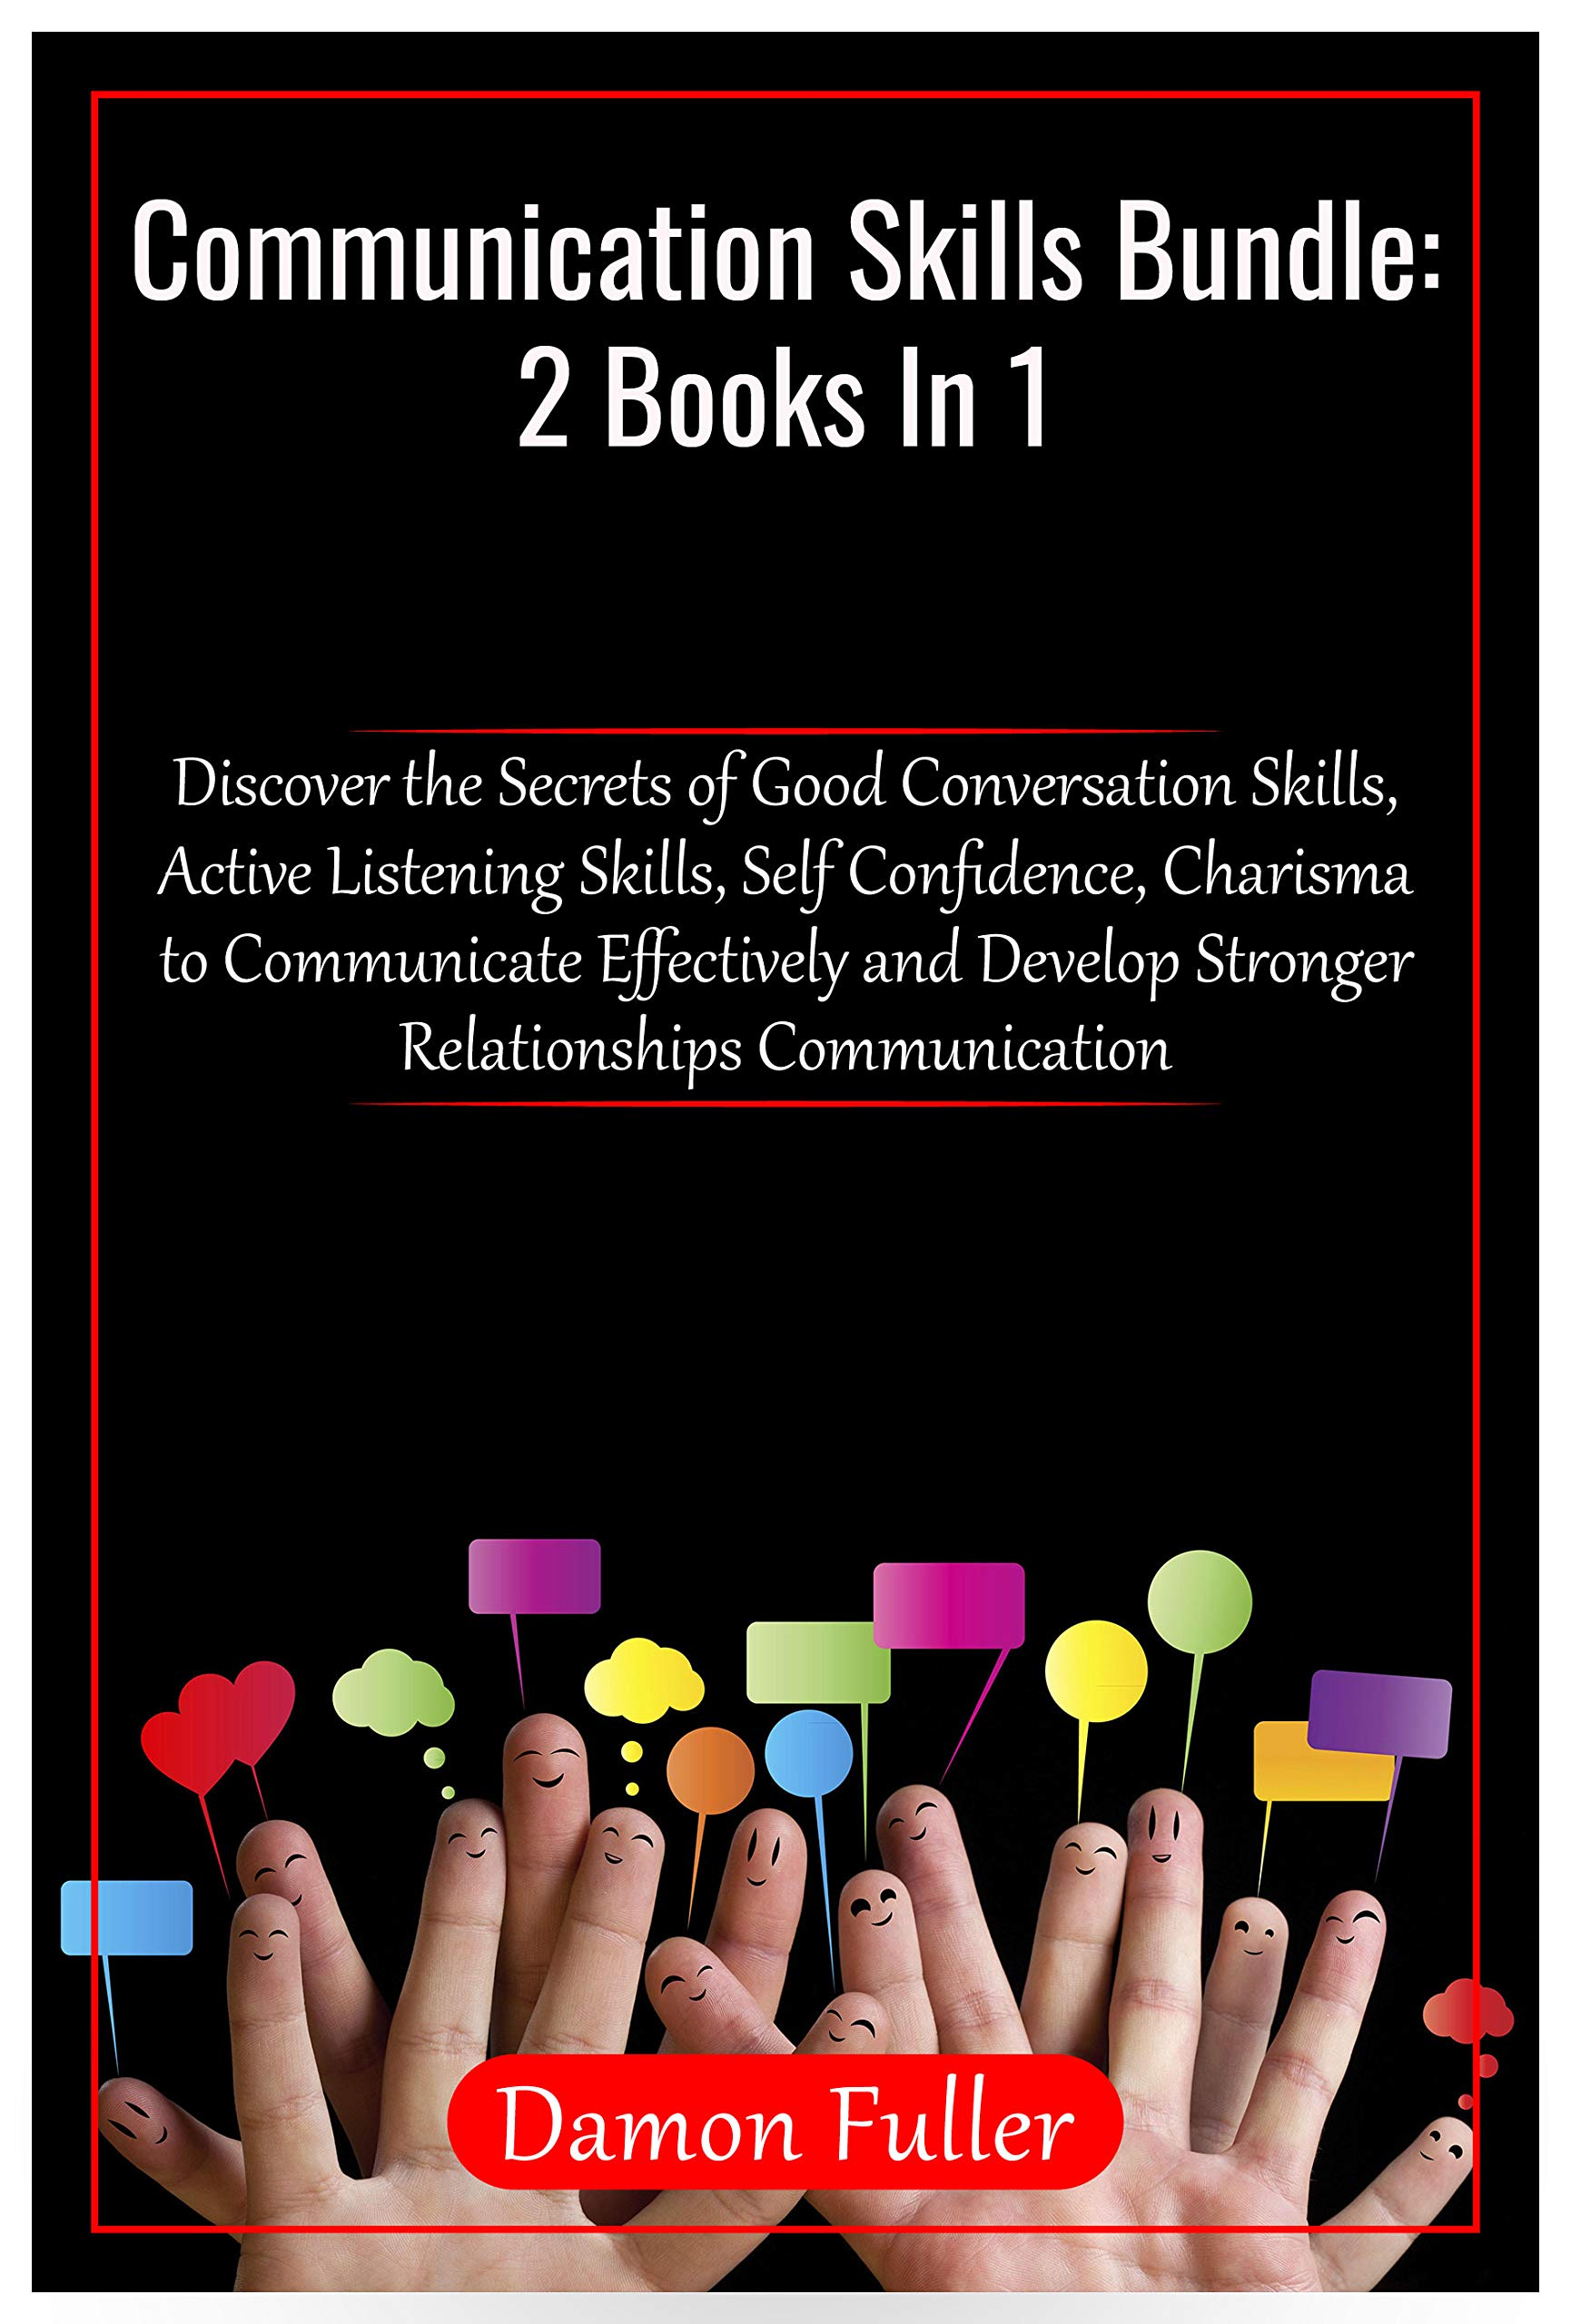 Communication Skills Bundle: 2 Books in 1 : Discover the Secrets of Good Conversation Skills, Active Listening Skills, Self Confidence, Charisma to Communicate Effectively and Develop Relationships